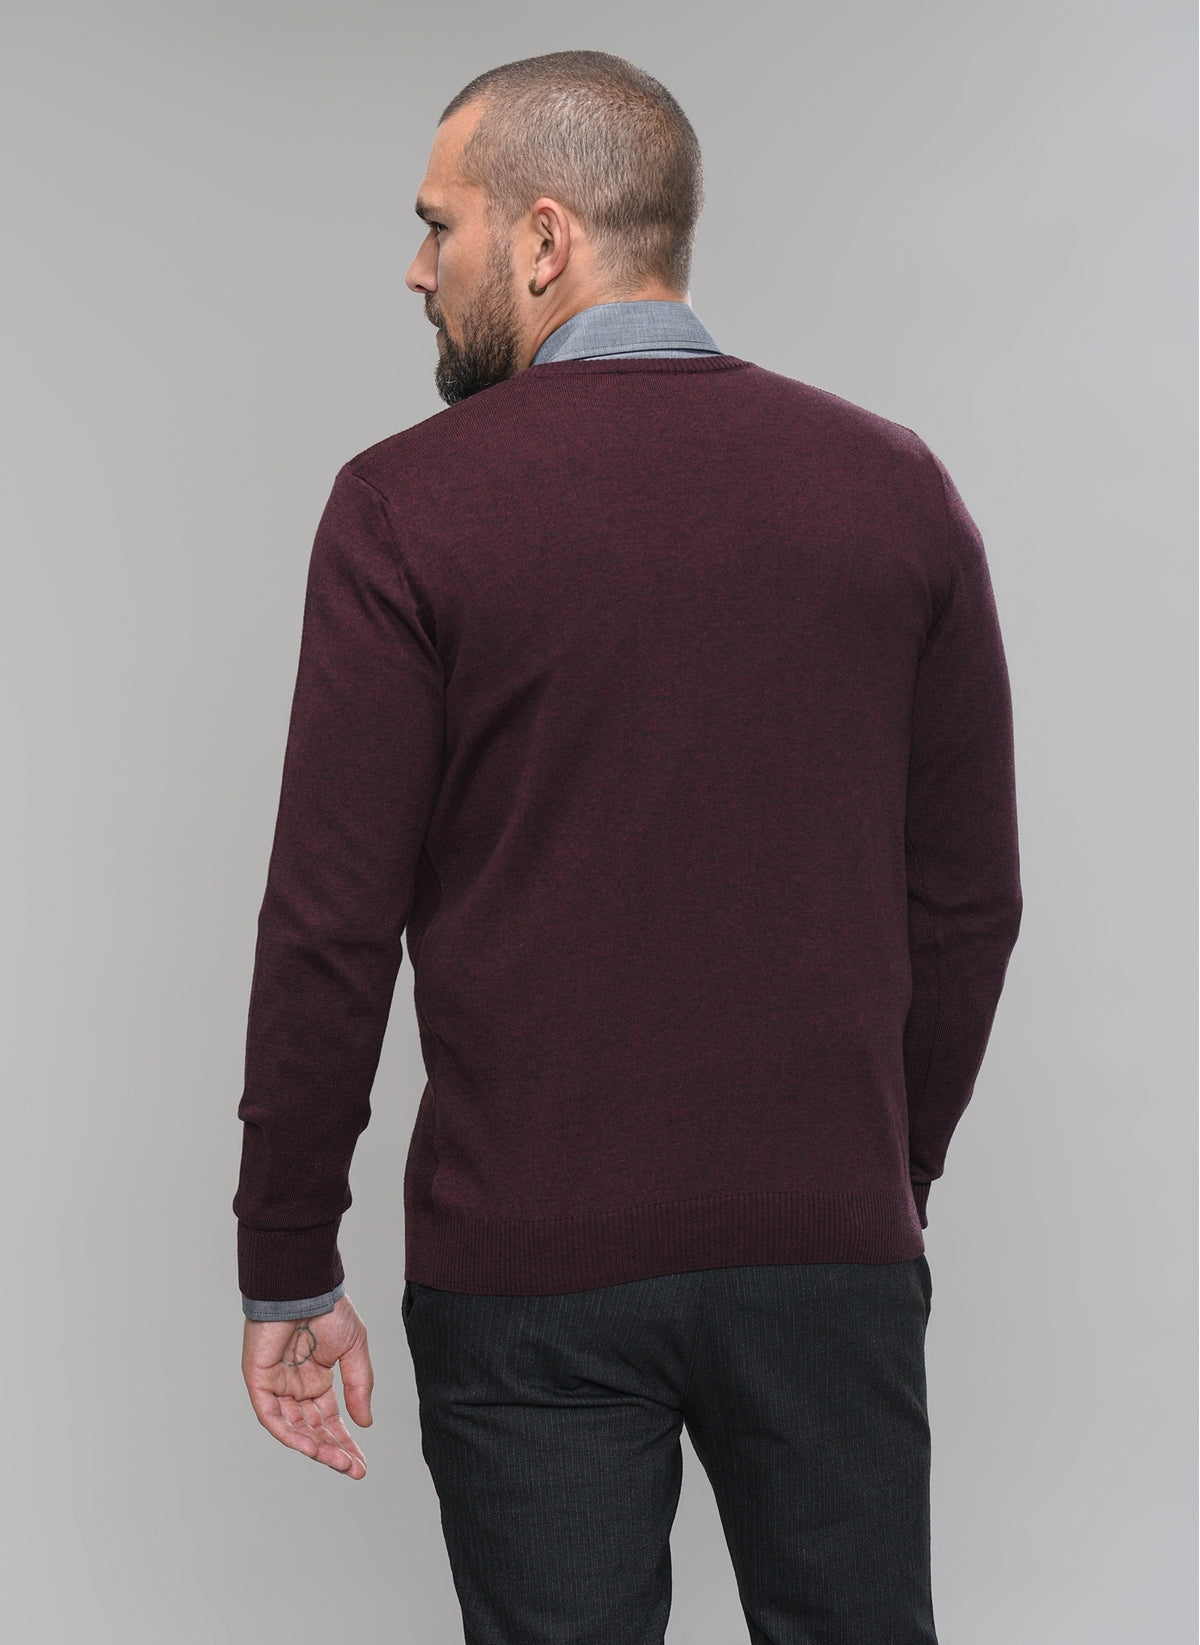 Textured-Front Sweater in Burgundy Heather